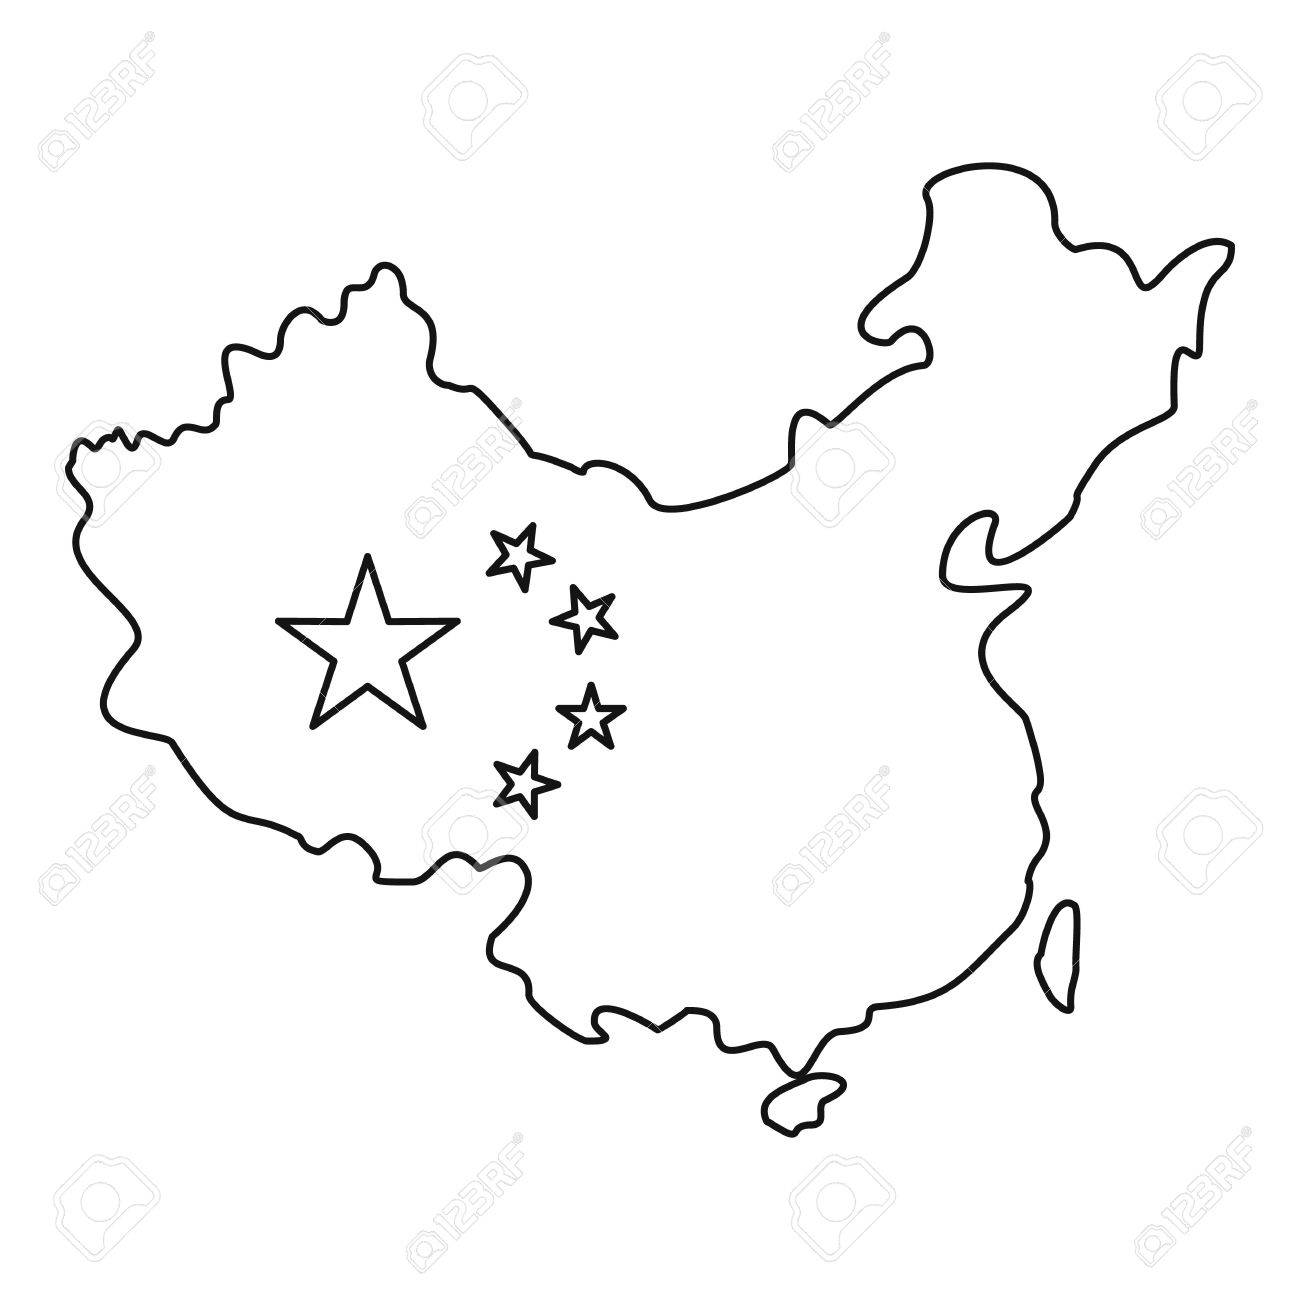 Map Of China With Flag Icon Outline Illustration Of Map Of China